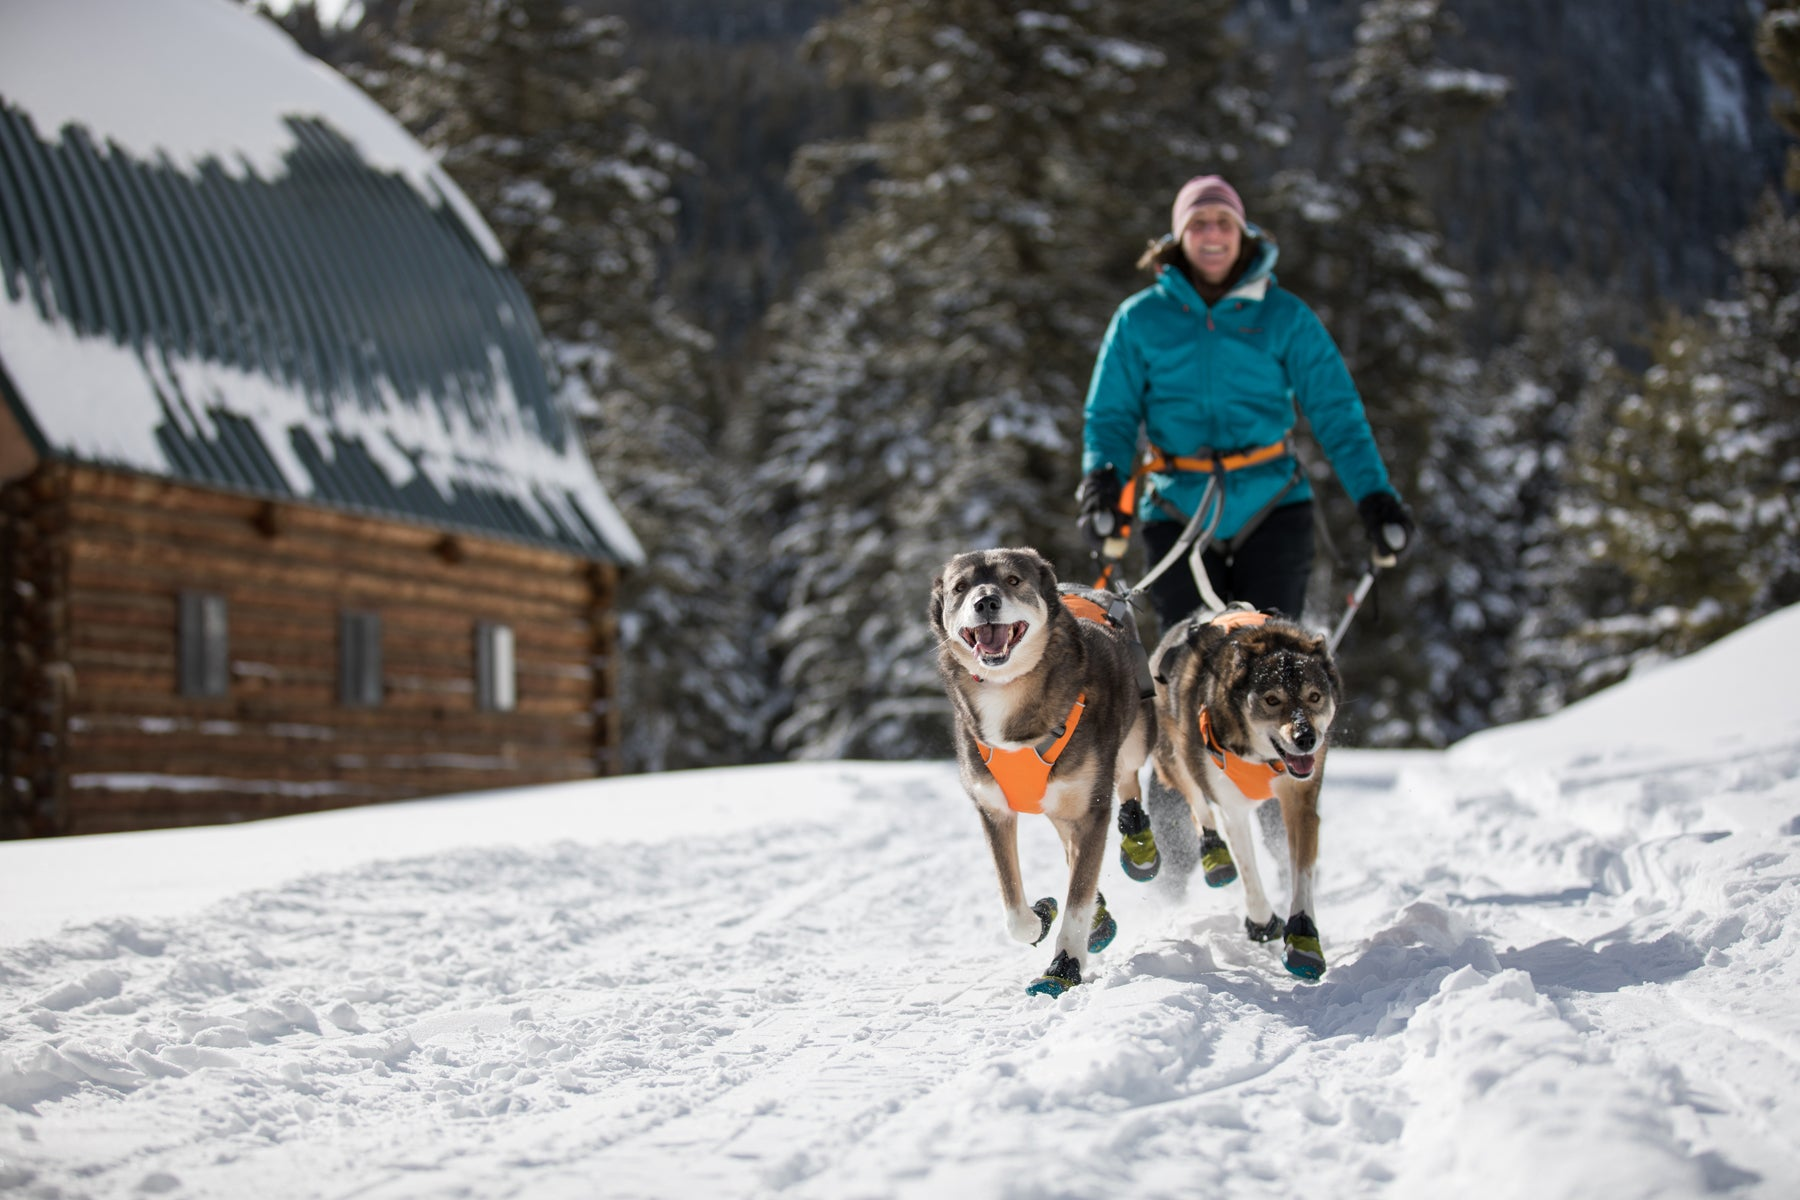 Two dogs running in Polar Trex dog boots on snowy trail towing Darcie on skis behind them.